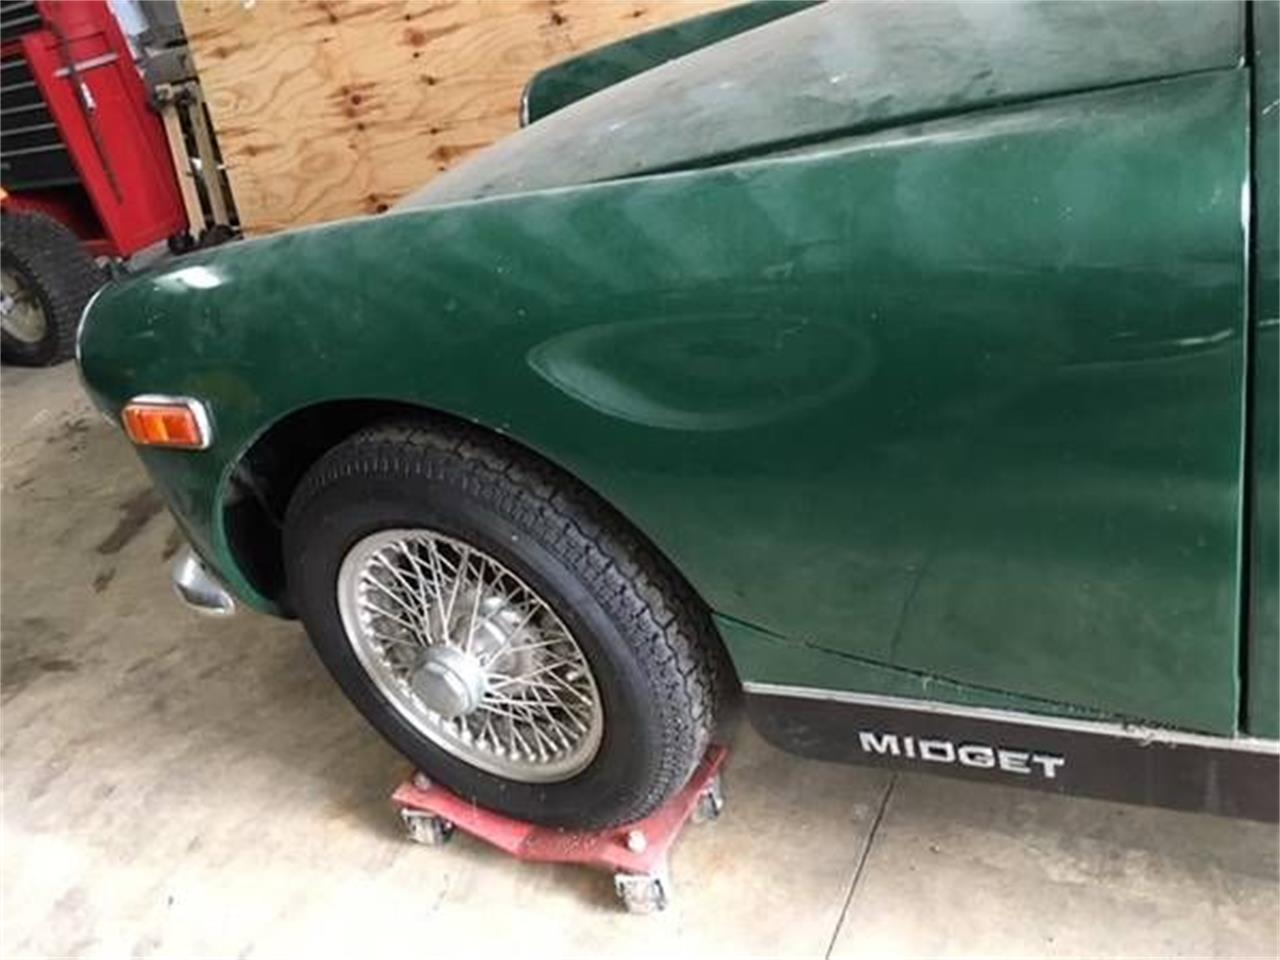 1970 MG Midget for sale in Cadillac, MI – photo 8